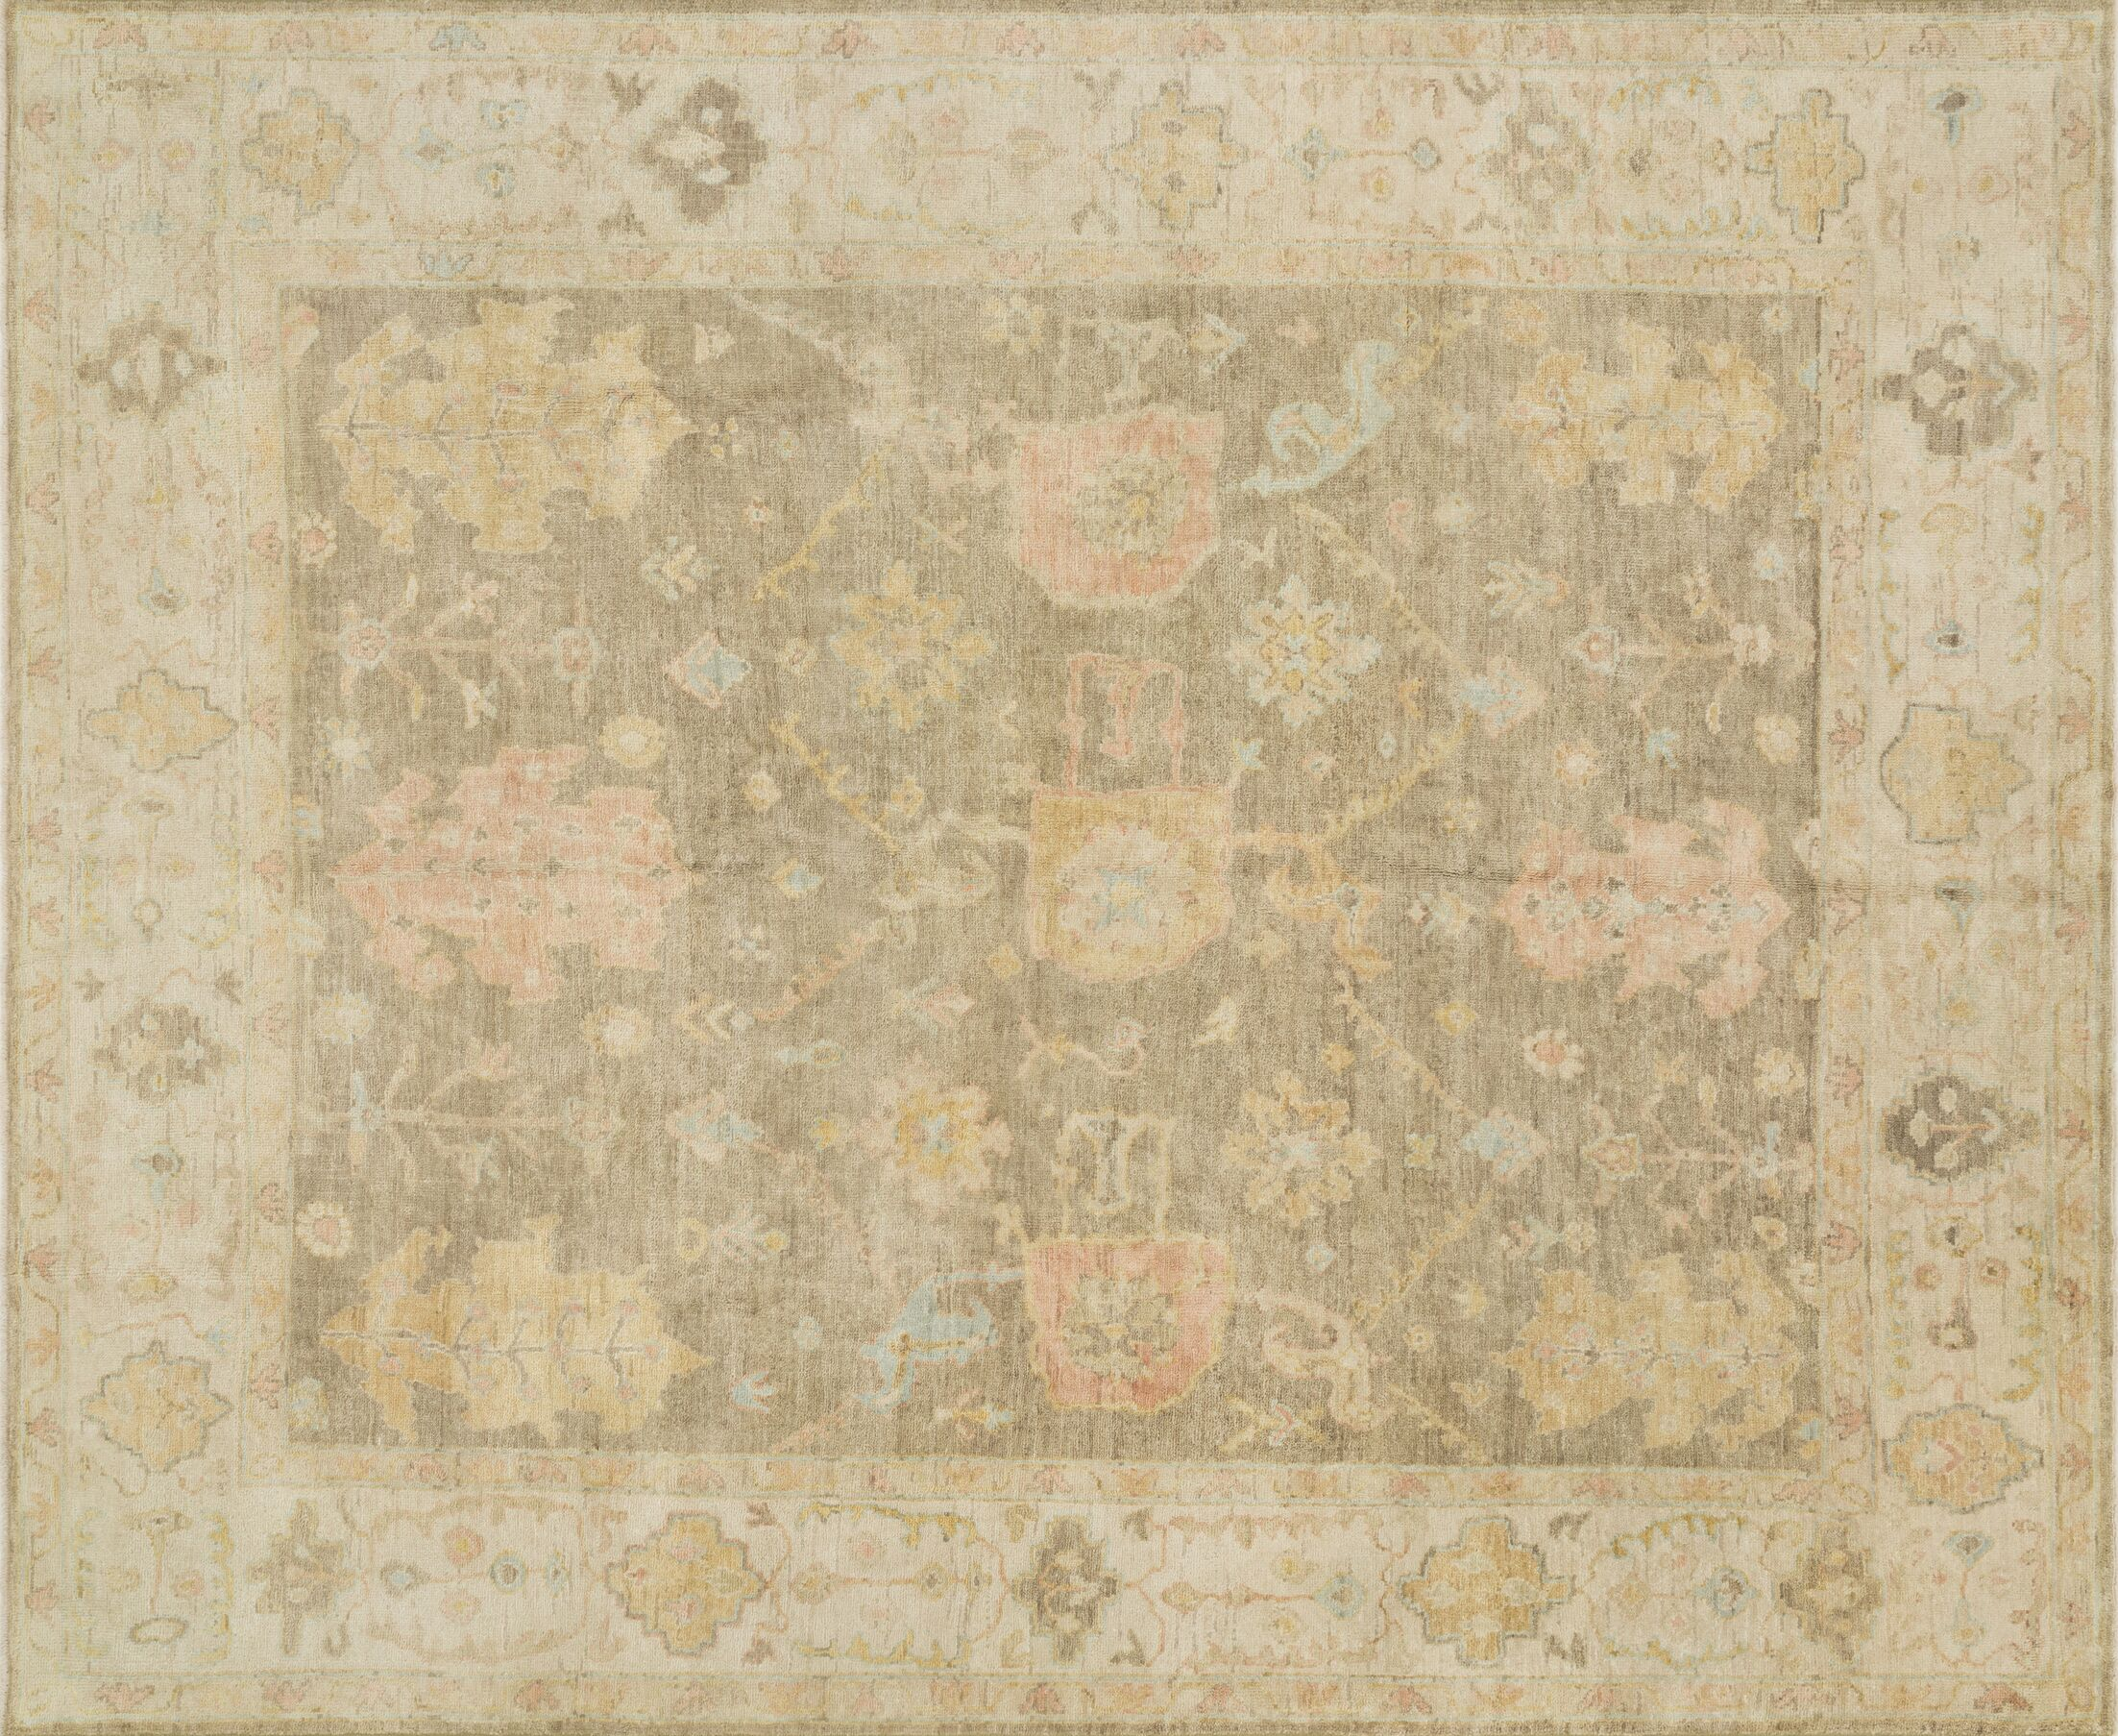 Abelard Hand-Knotted Moss Gray/Stone Area Rug Rug Size: Rectangle 9'6